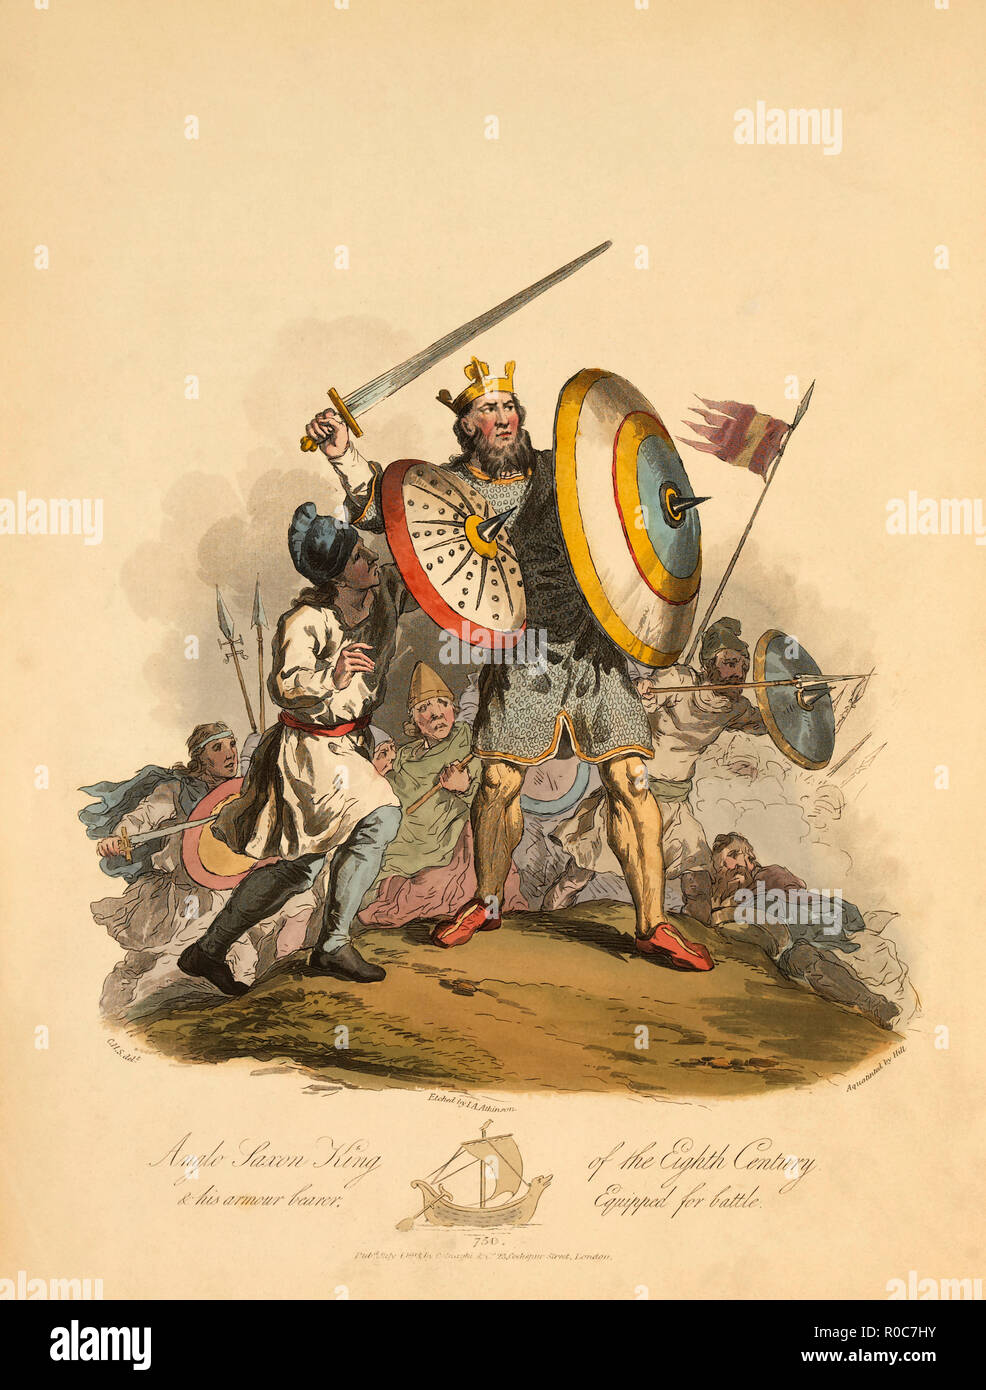 Anglo Saxon King of the Eighth Century and his Armour Bearer Equipped for Battle, 750, Etching by I.A. Atkinson, 1813 - Stock Image